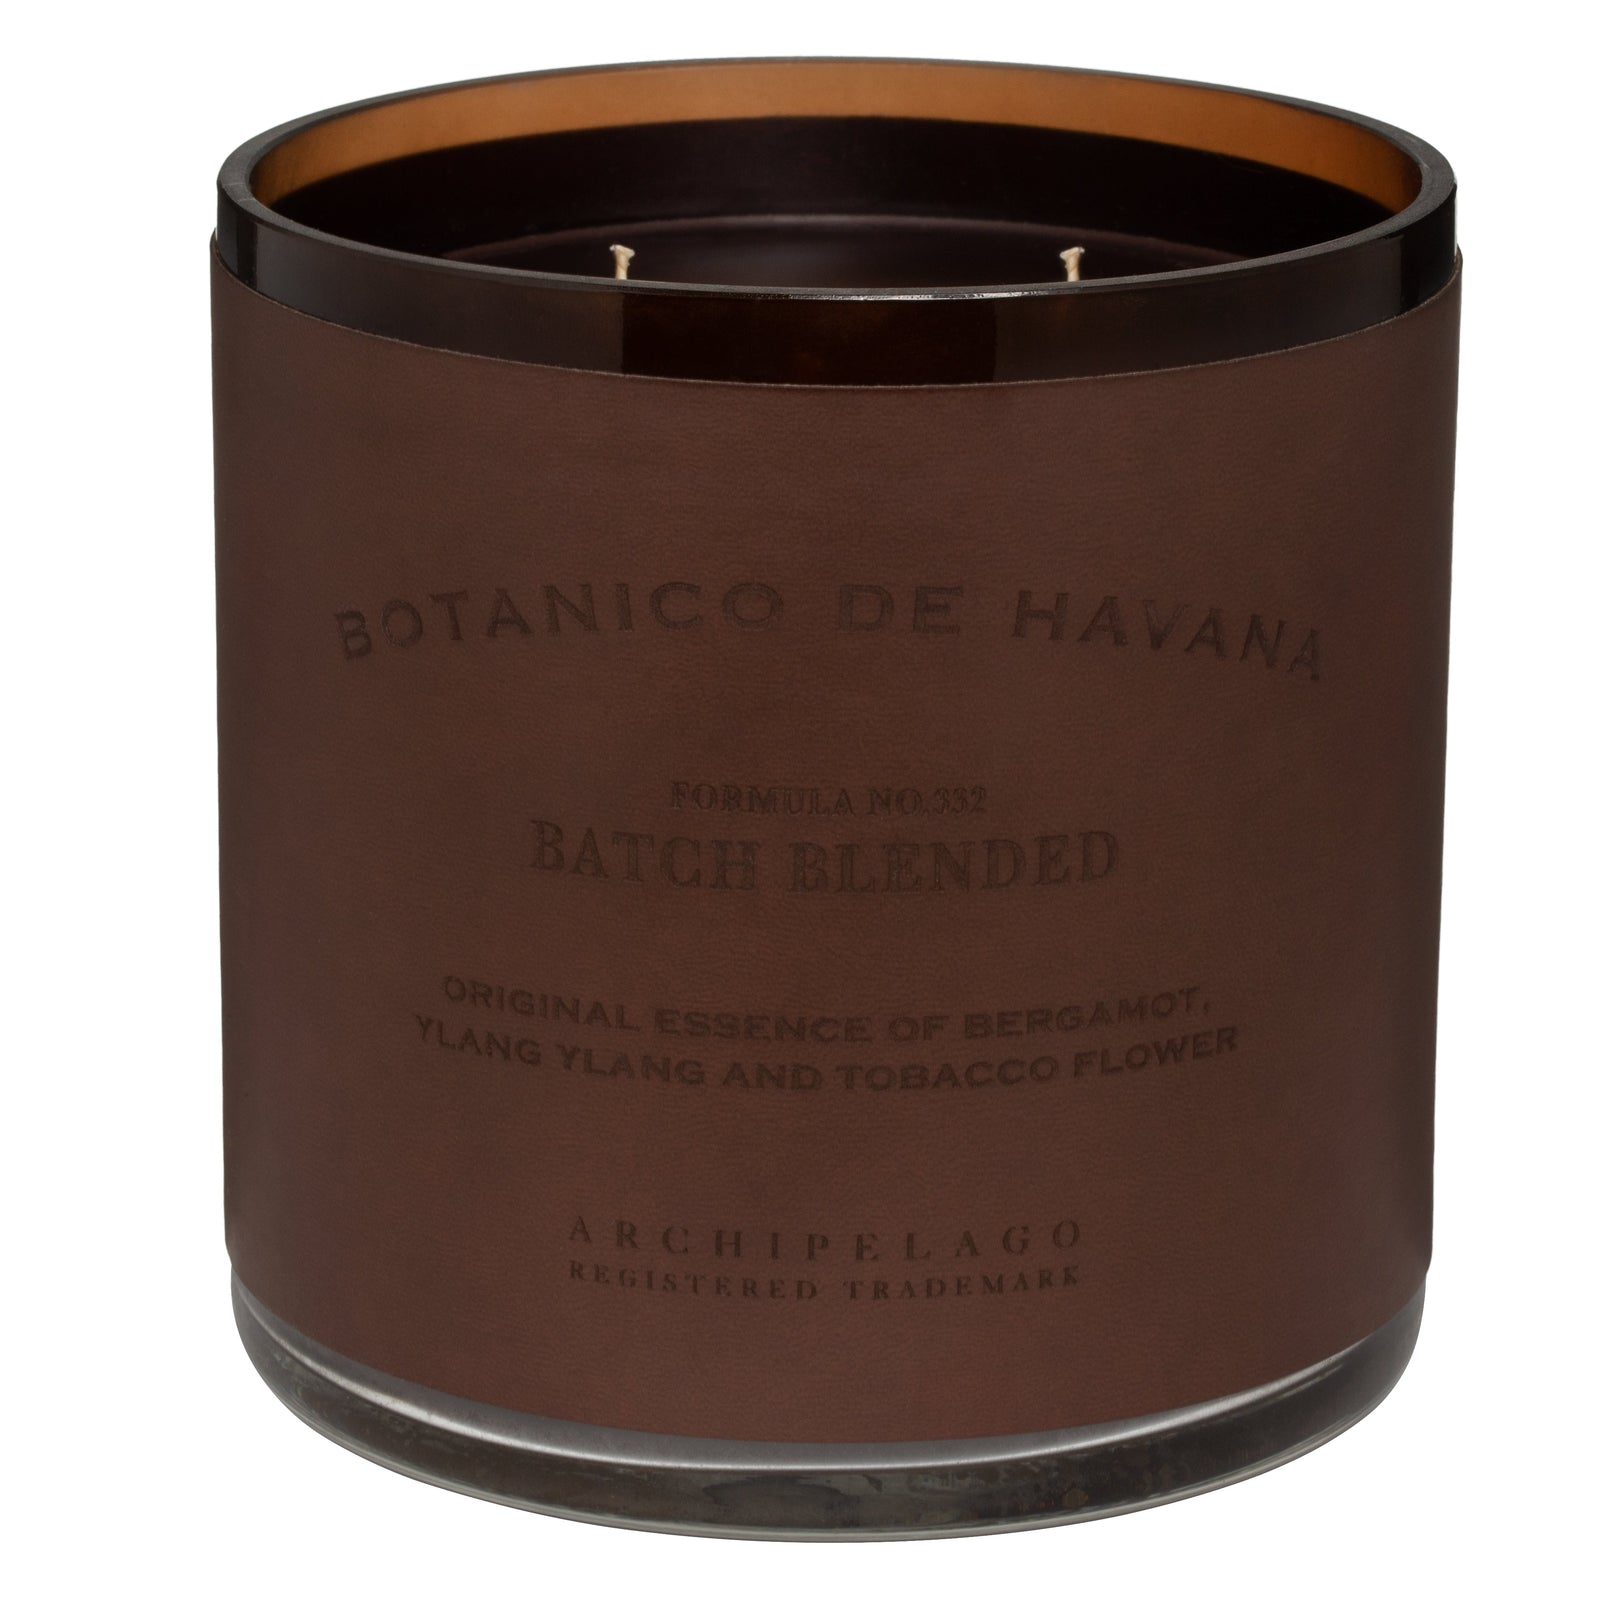 The XL 3 Wick Botanico de Havana Candle is a dramatic and impressive addition to any desk, table or mantel, and is the one decorative accessory that will deliver hundreds of hours of the Botanico Fragrance blend of Bergamot, Tobacco Leaf, and Ylang Ylang